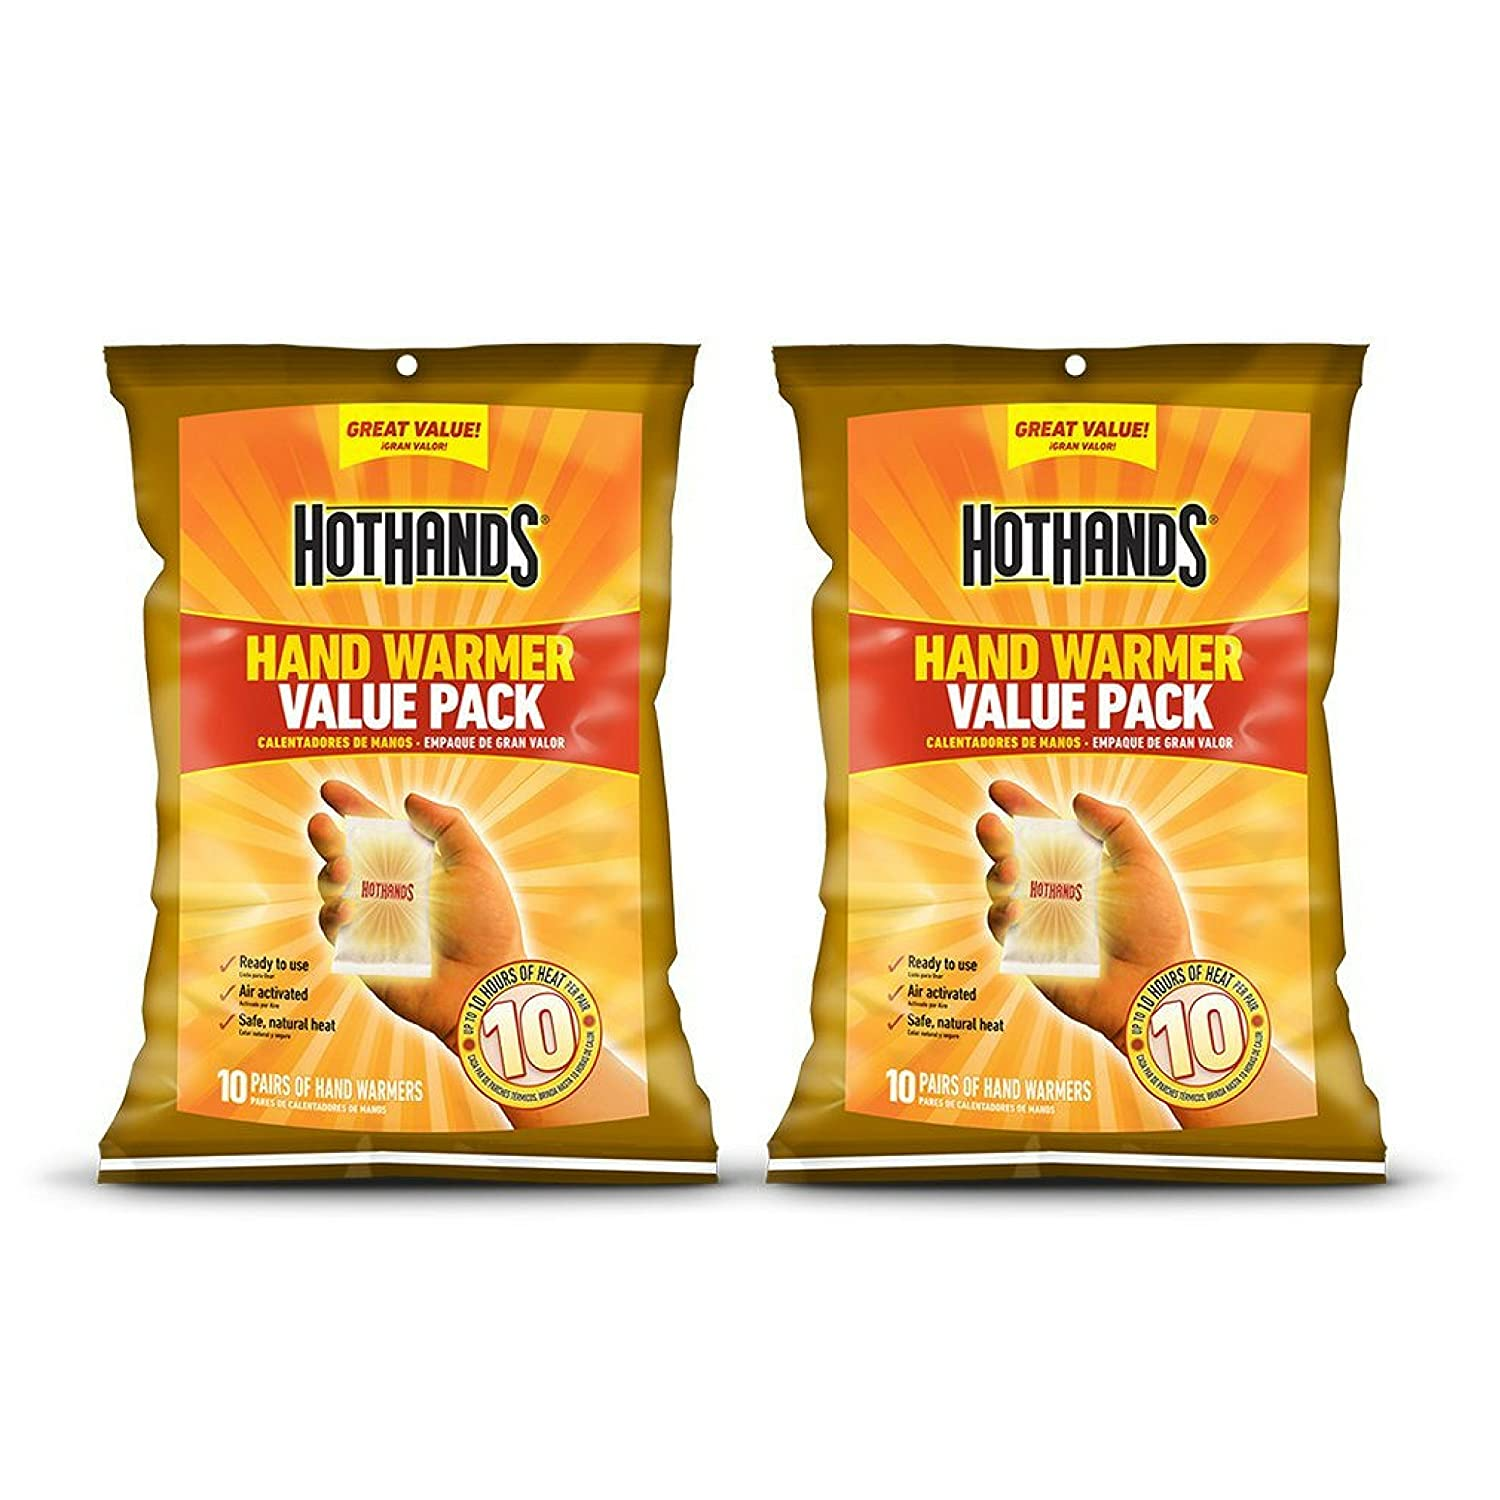 HotHands Hand Warmer Value Pack